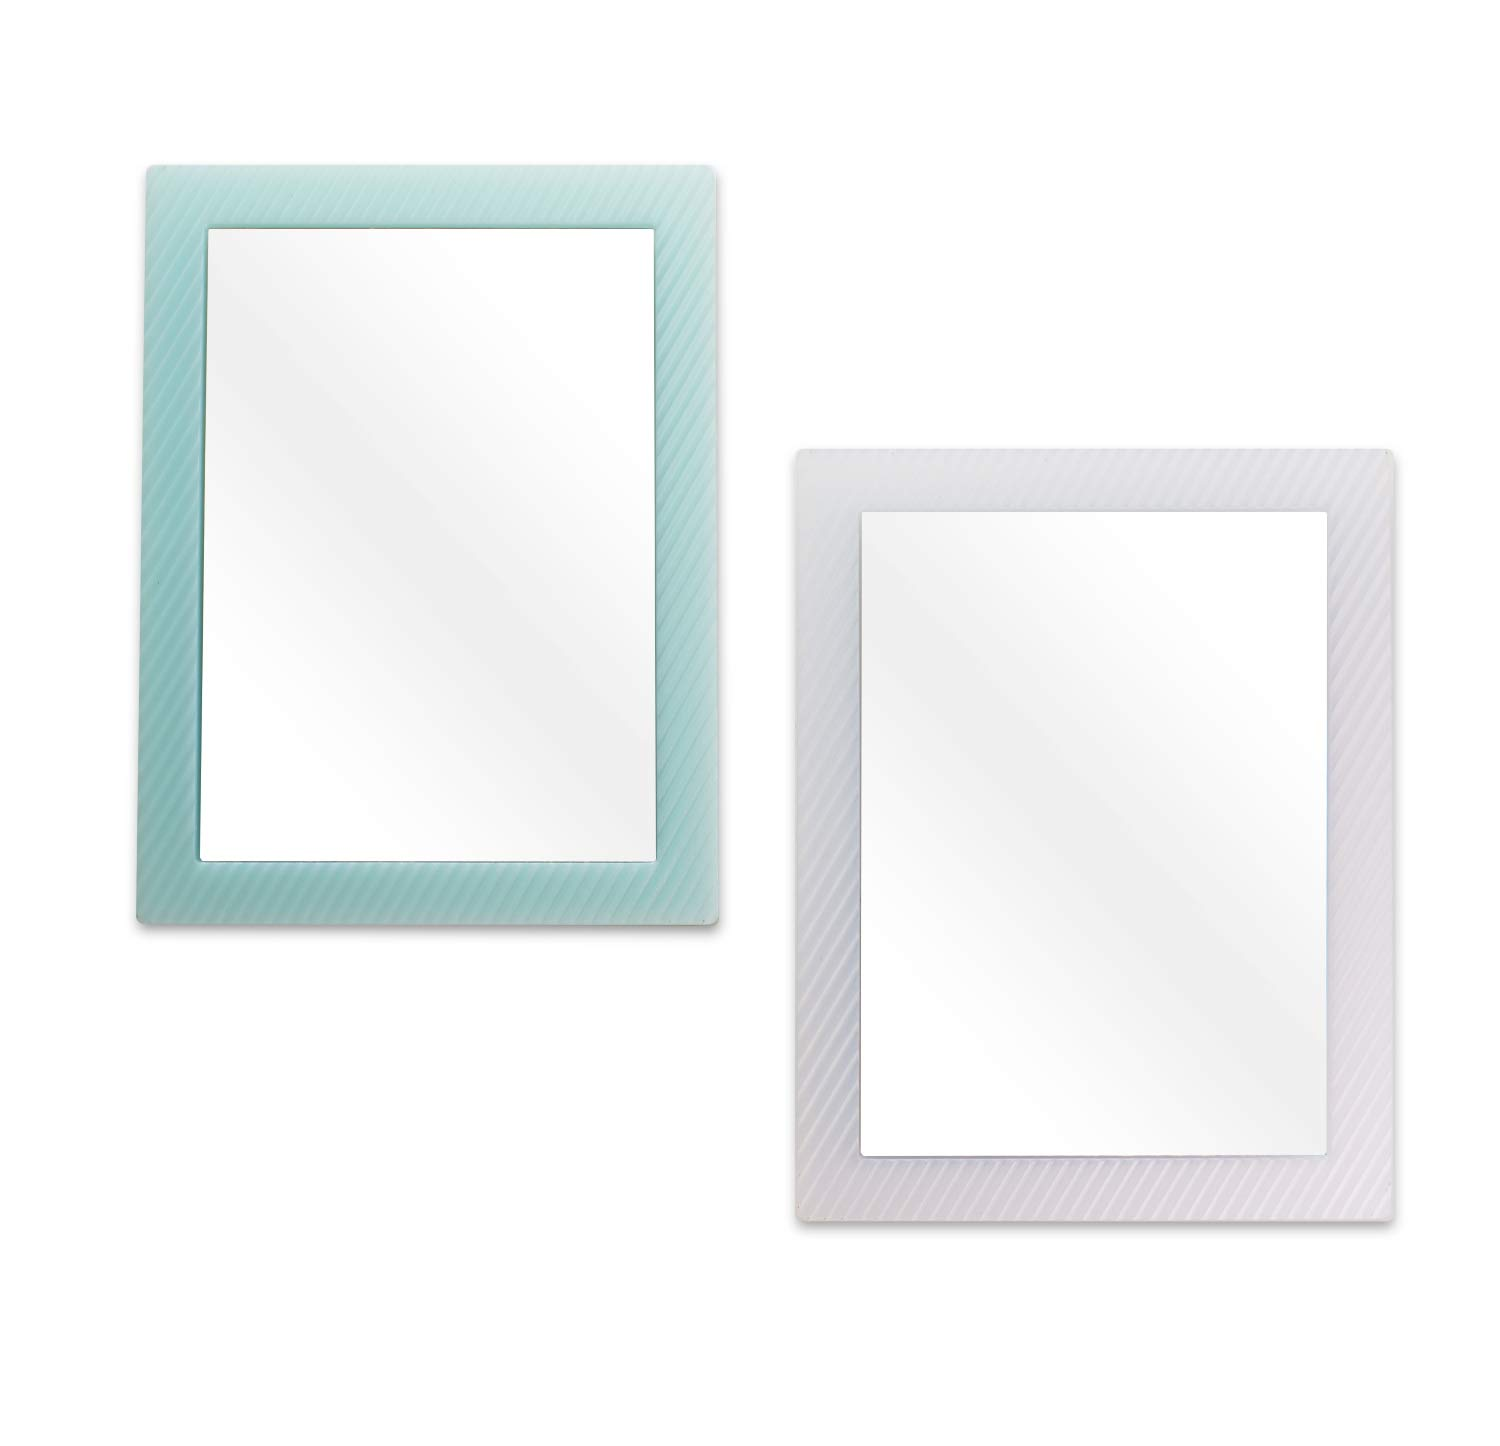 2 Pack Magnetic Locker Mirror for School Locker, Refrigerator, Office Cabinet, 6.3''x 4.8'', Locker Accessories Rectangular Mirror for Girls and Boys (Soft Mint and White)